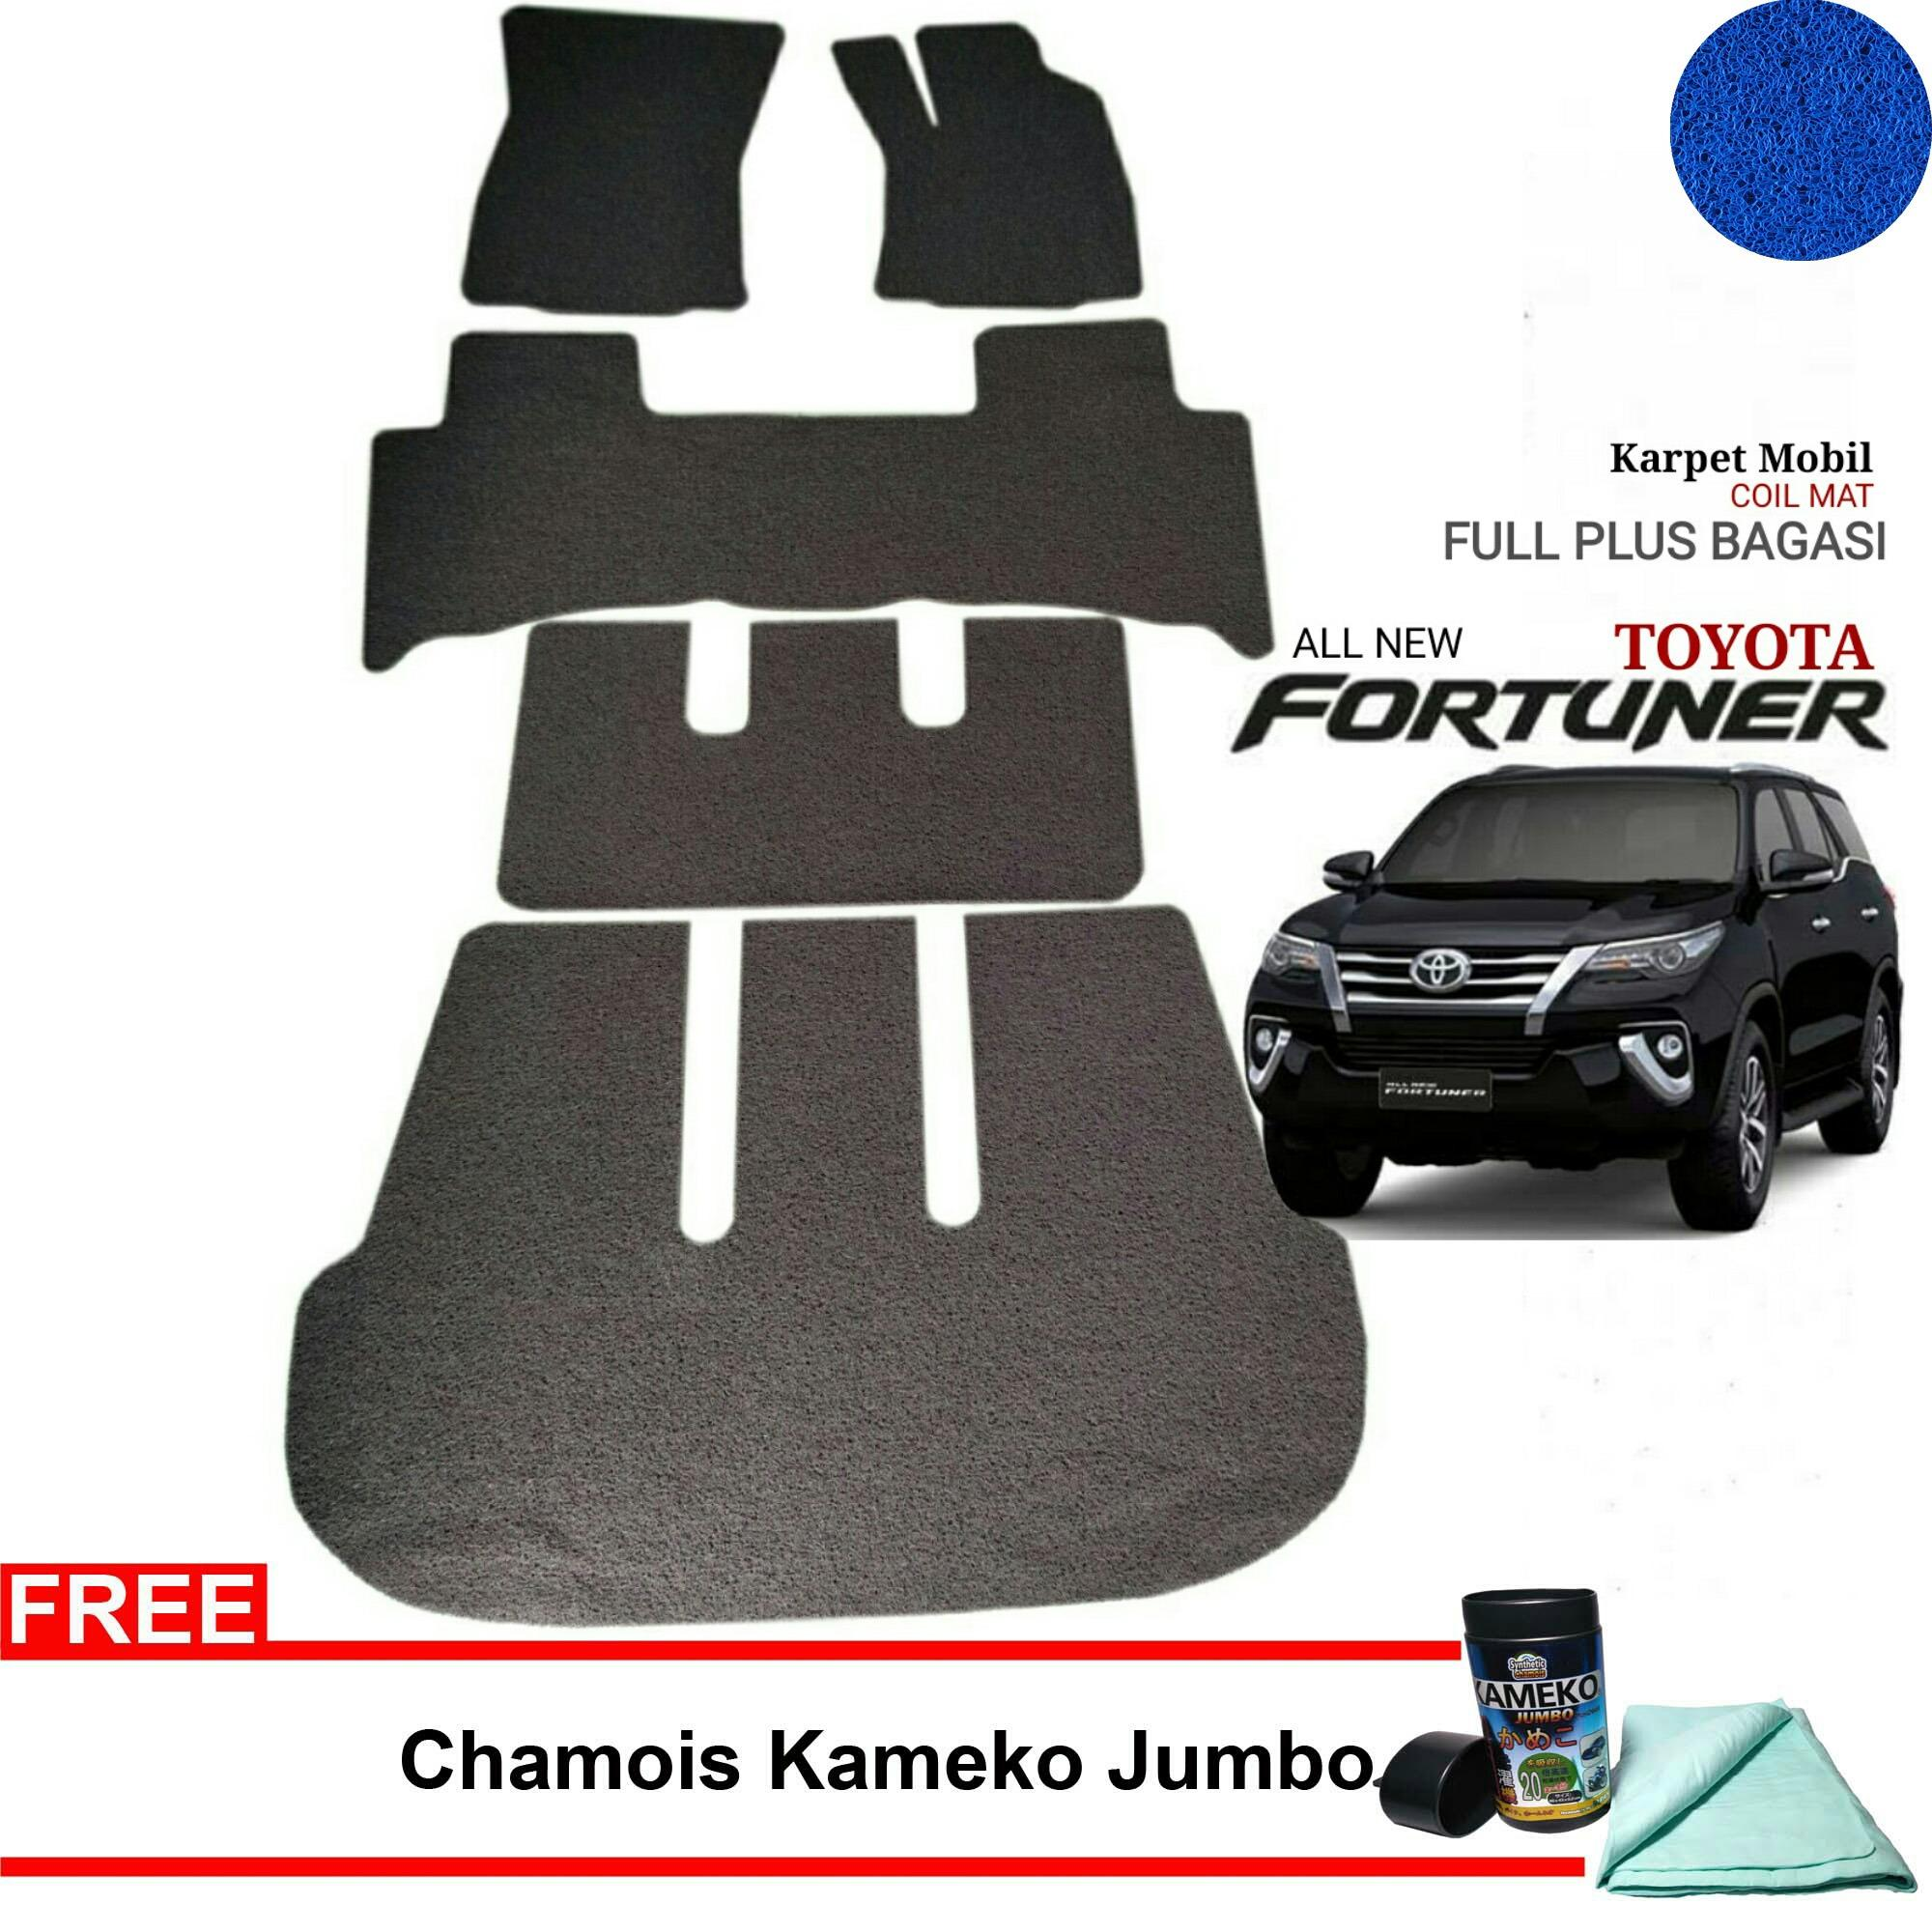 Jual Karmob Karpet Mobil All New Fortuner Karpet Mie All New Fortuner Comfort Karpet Karet All New Fortuner Aksesoris All New Fortuner Branded